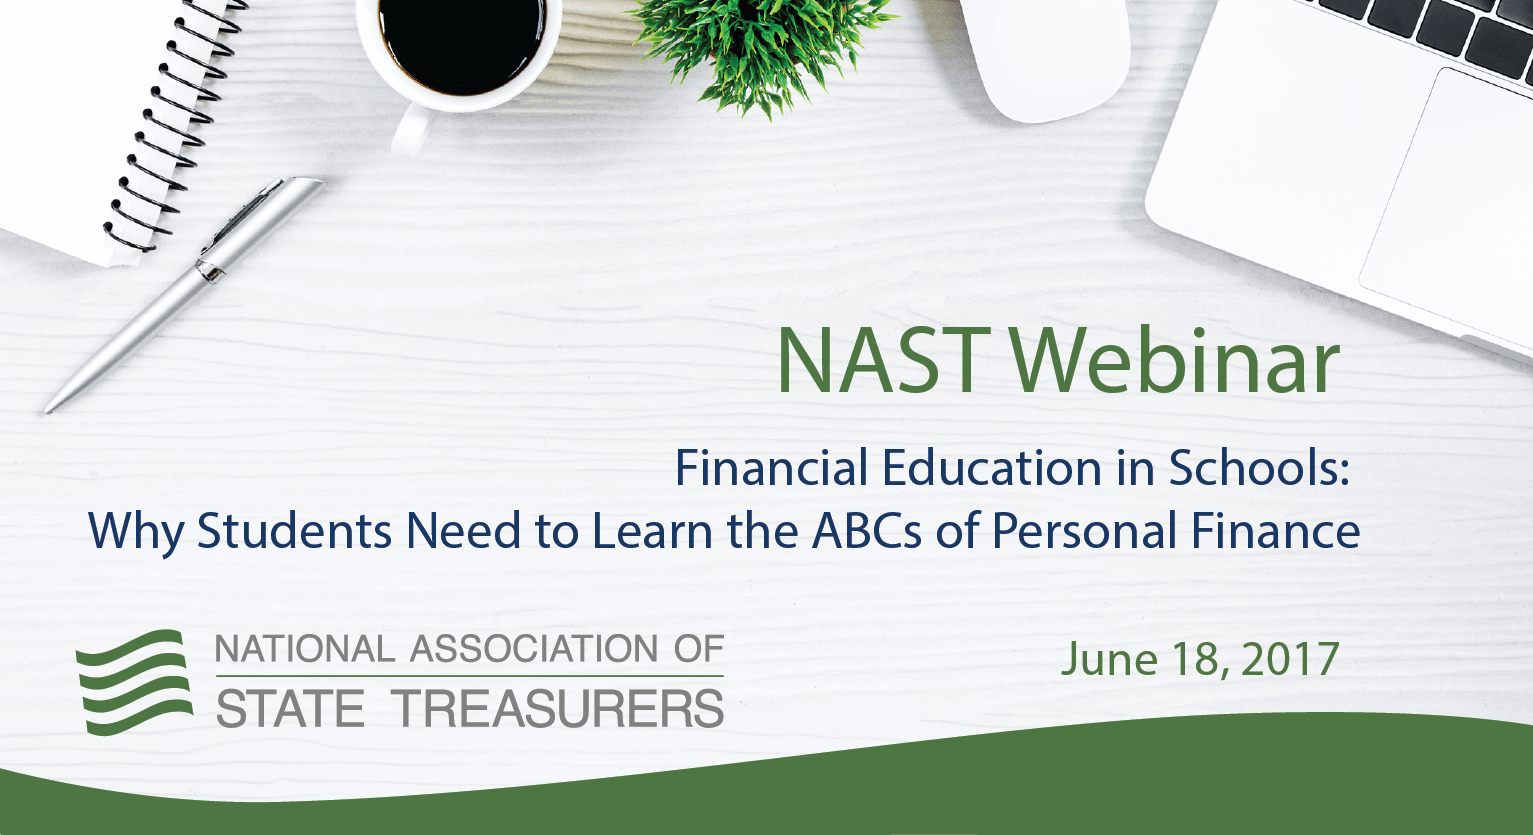 Financial Education in Schools: Why Students Need to Learn the ABCs of Personal Finance